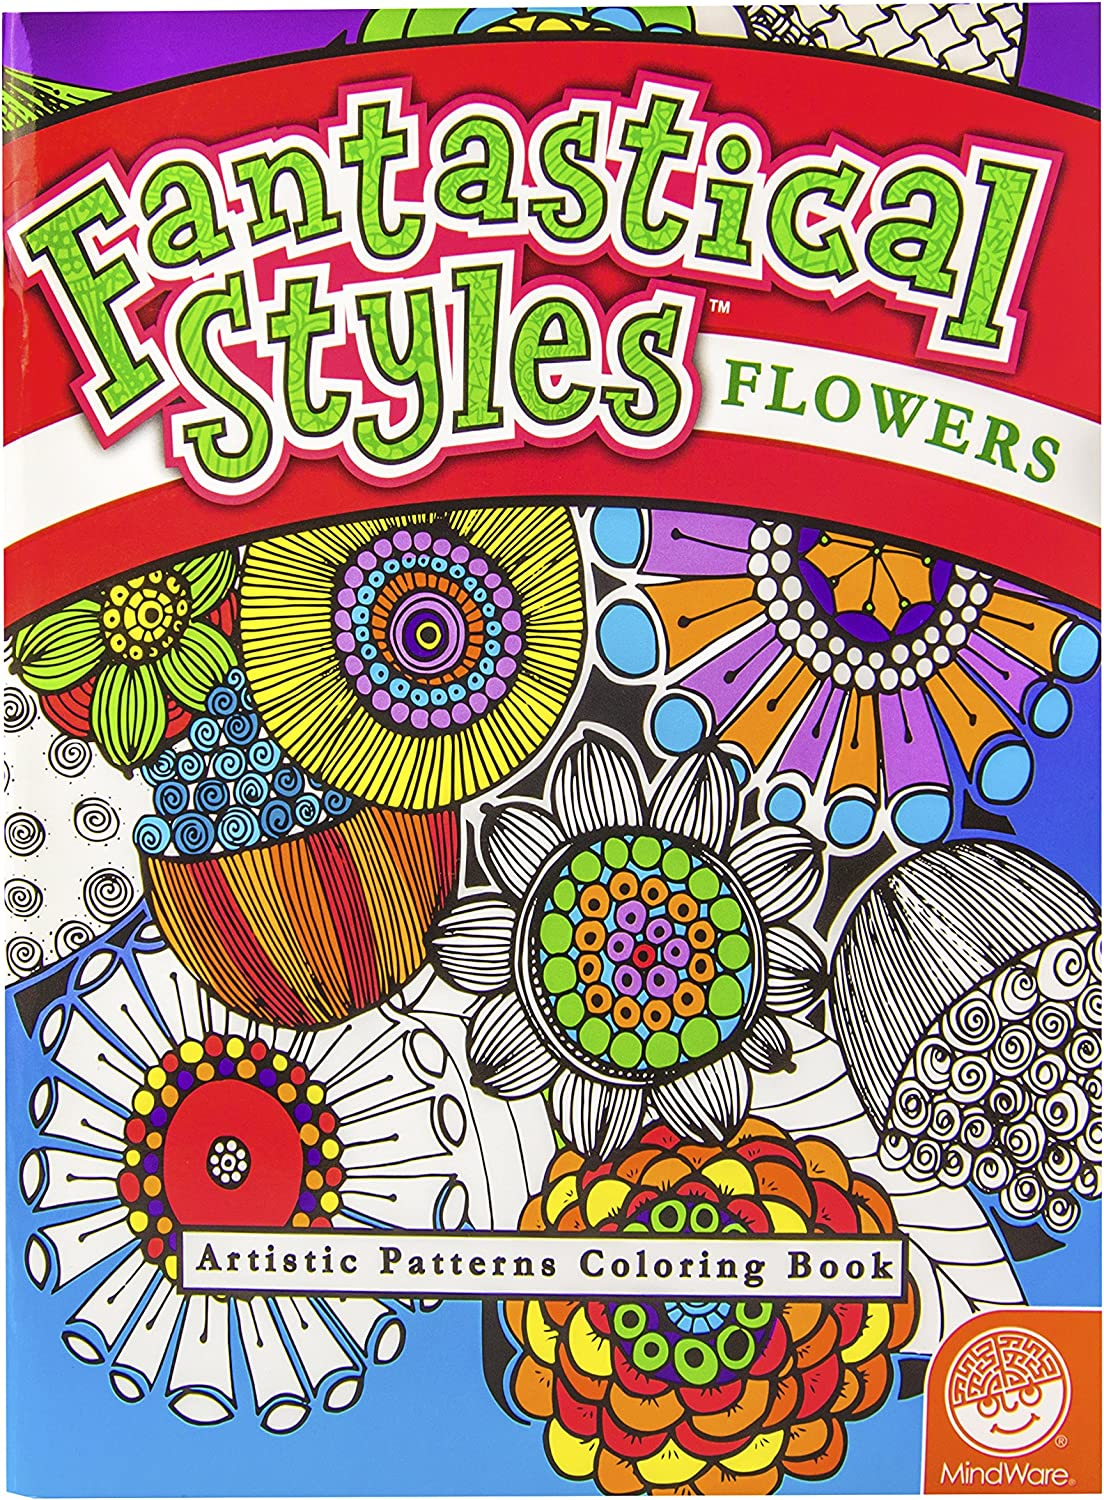 MindWare – Fantastical security Flowers Artisti 1 year warranty Coloring Book